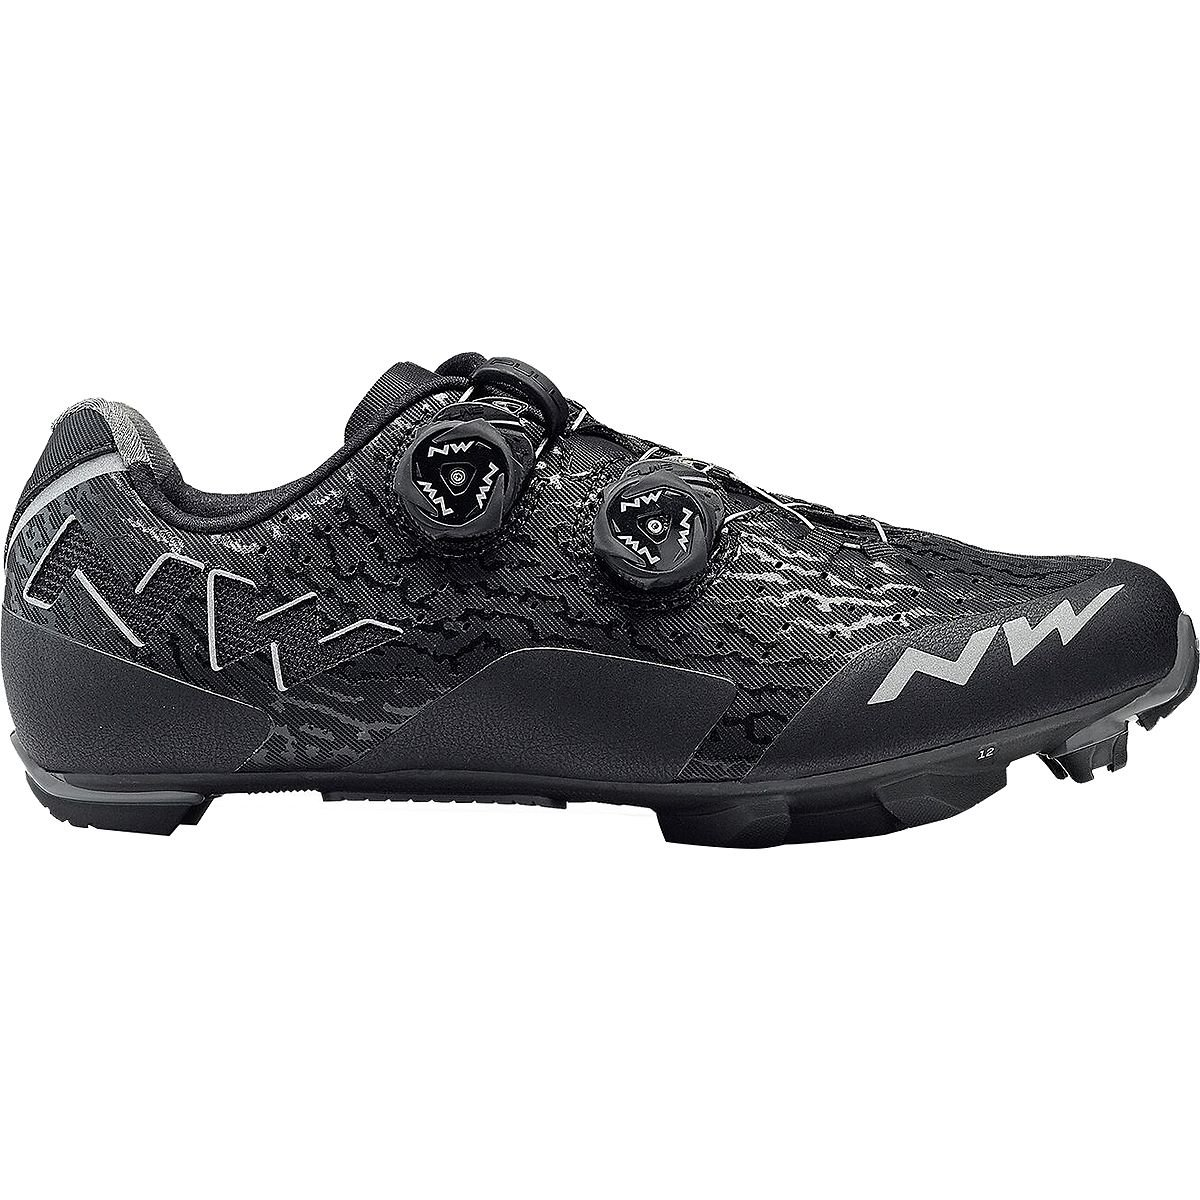 Northwave Rebel Cycling Shoe – Men 's Black/Anthracite、45.0   B07D3TLHY4